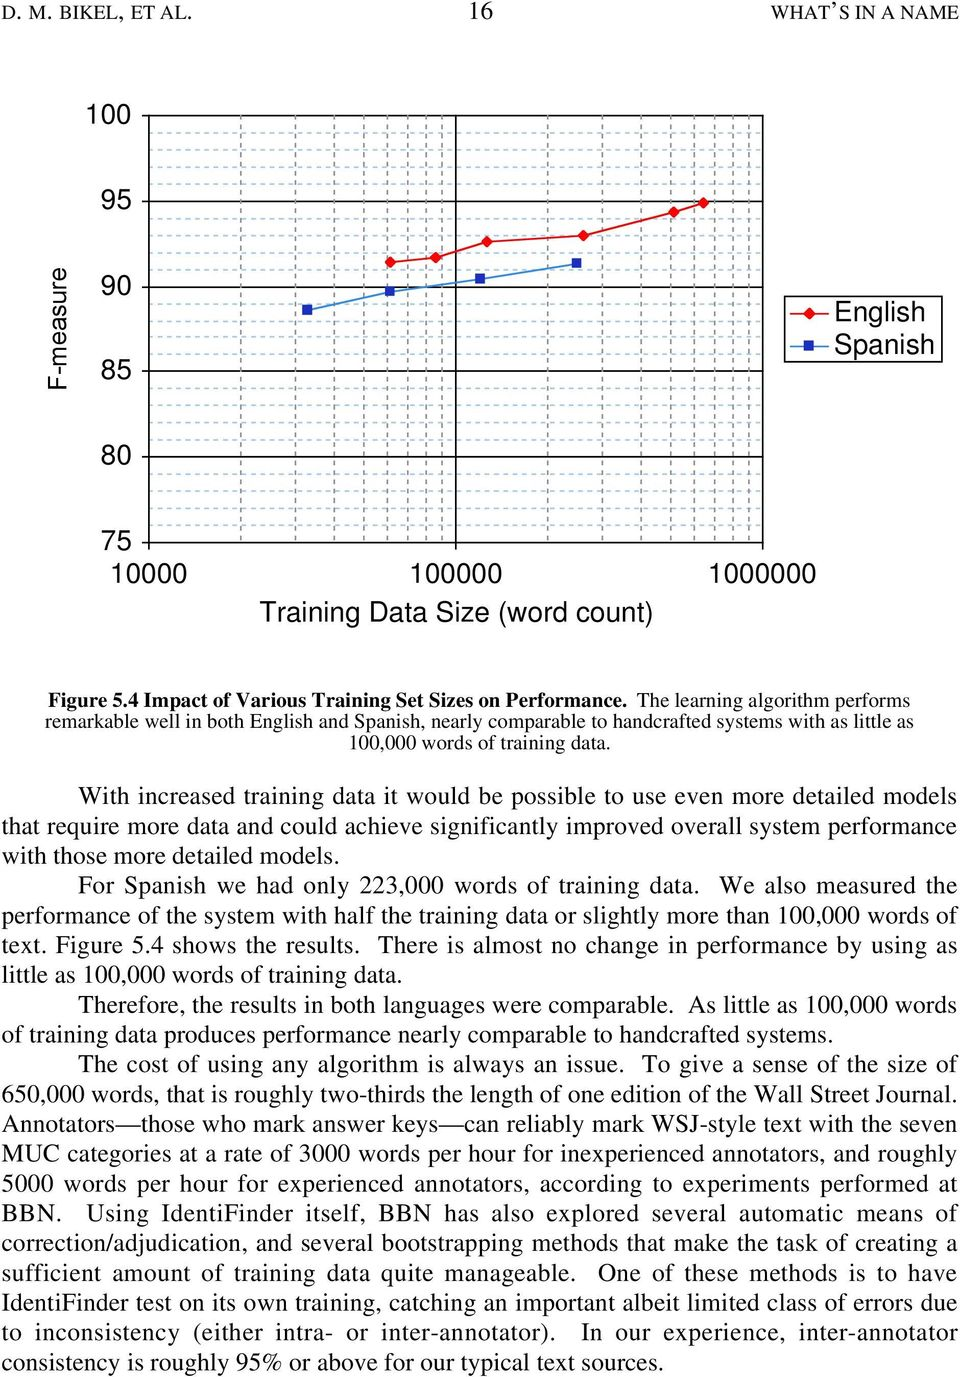 The learning algorithm performs remarkable well in both English and Spanish, nearly comparable to handcrafted systems with as little as 100,000 words of training data.